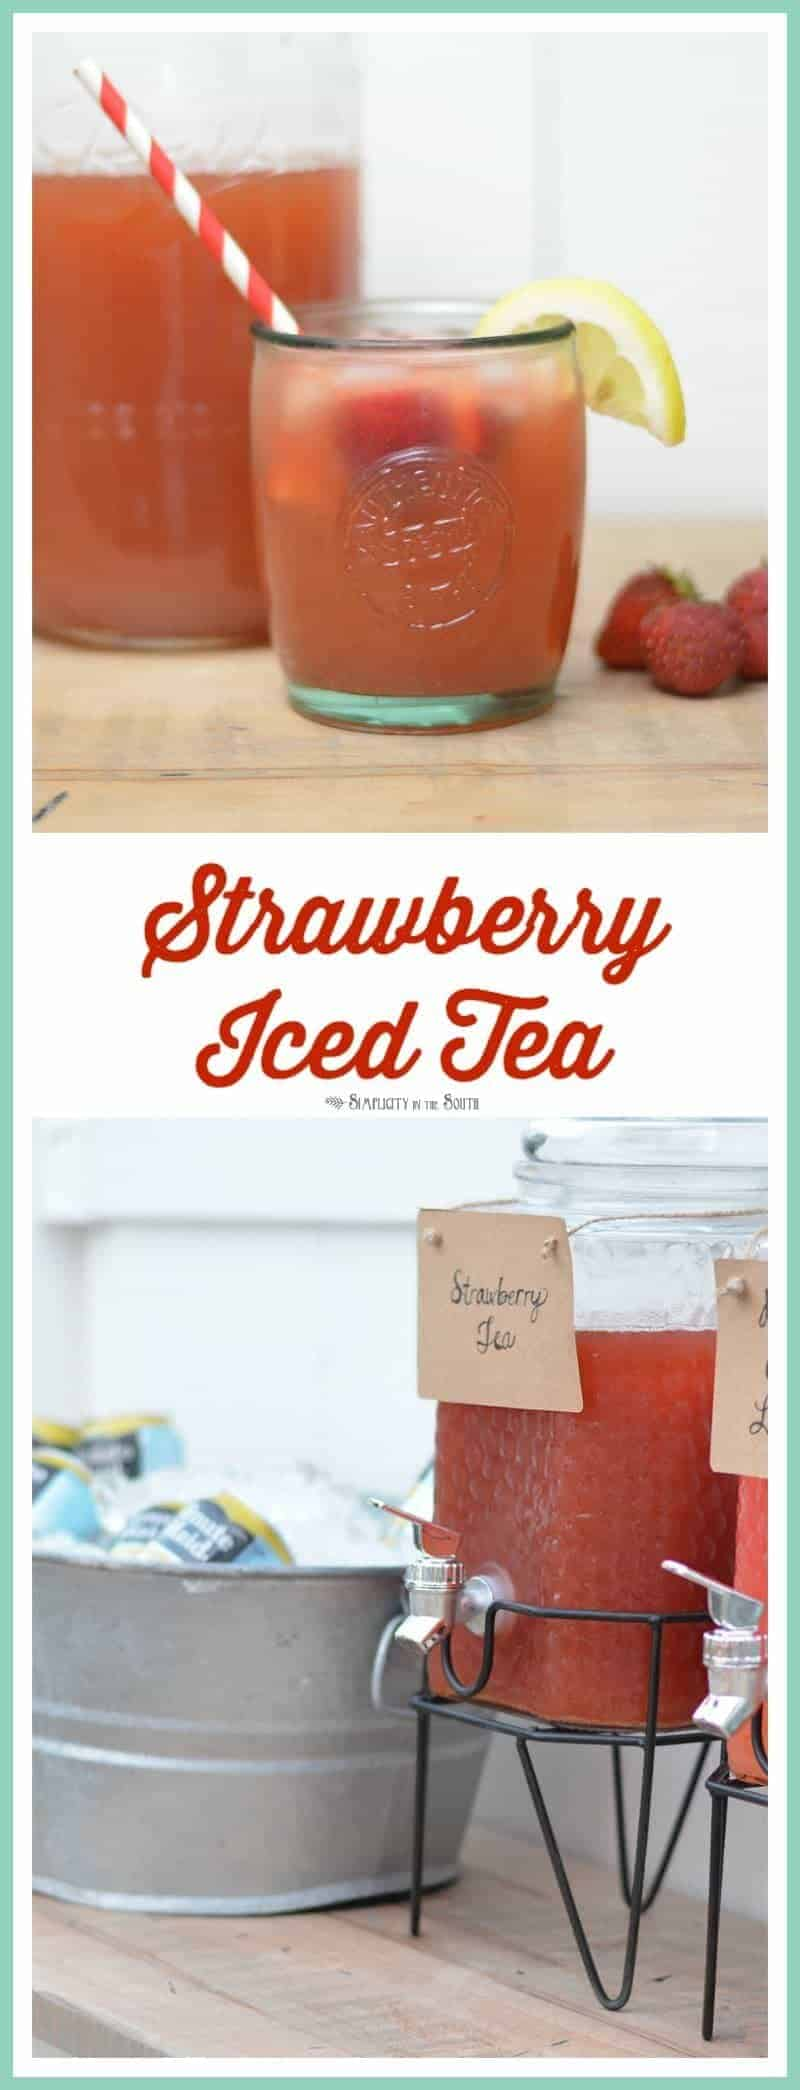 Strawberry Iced Tea This sweet and refreshing beverage can be made in 5 minutes!